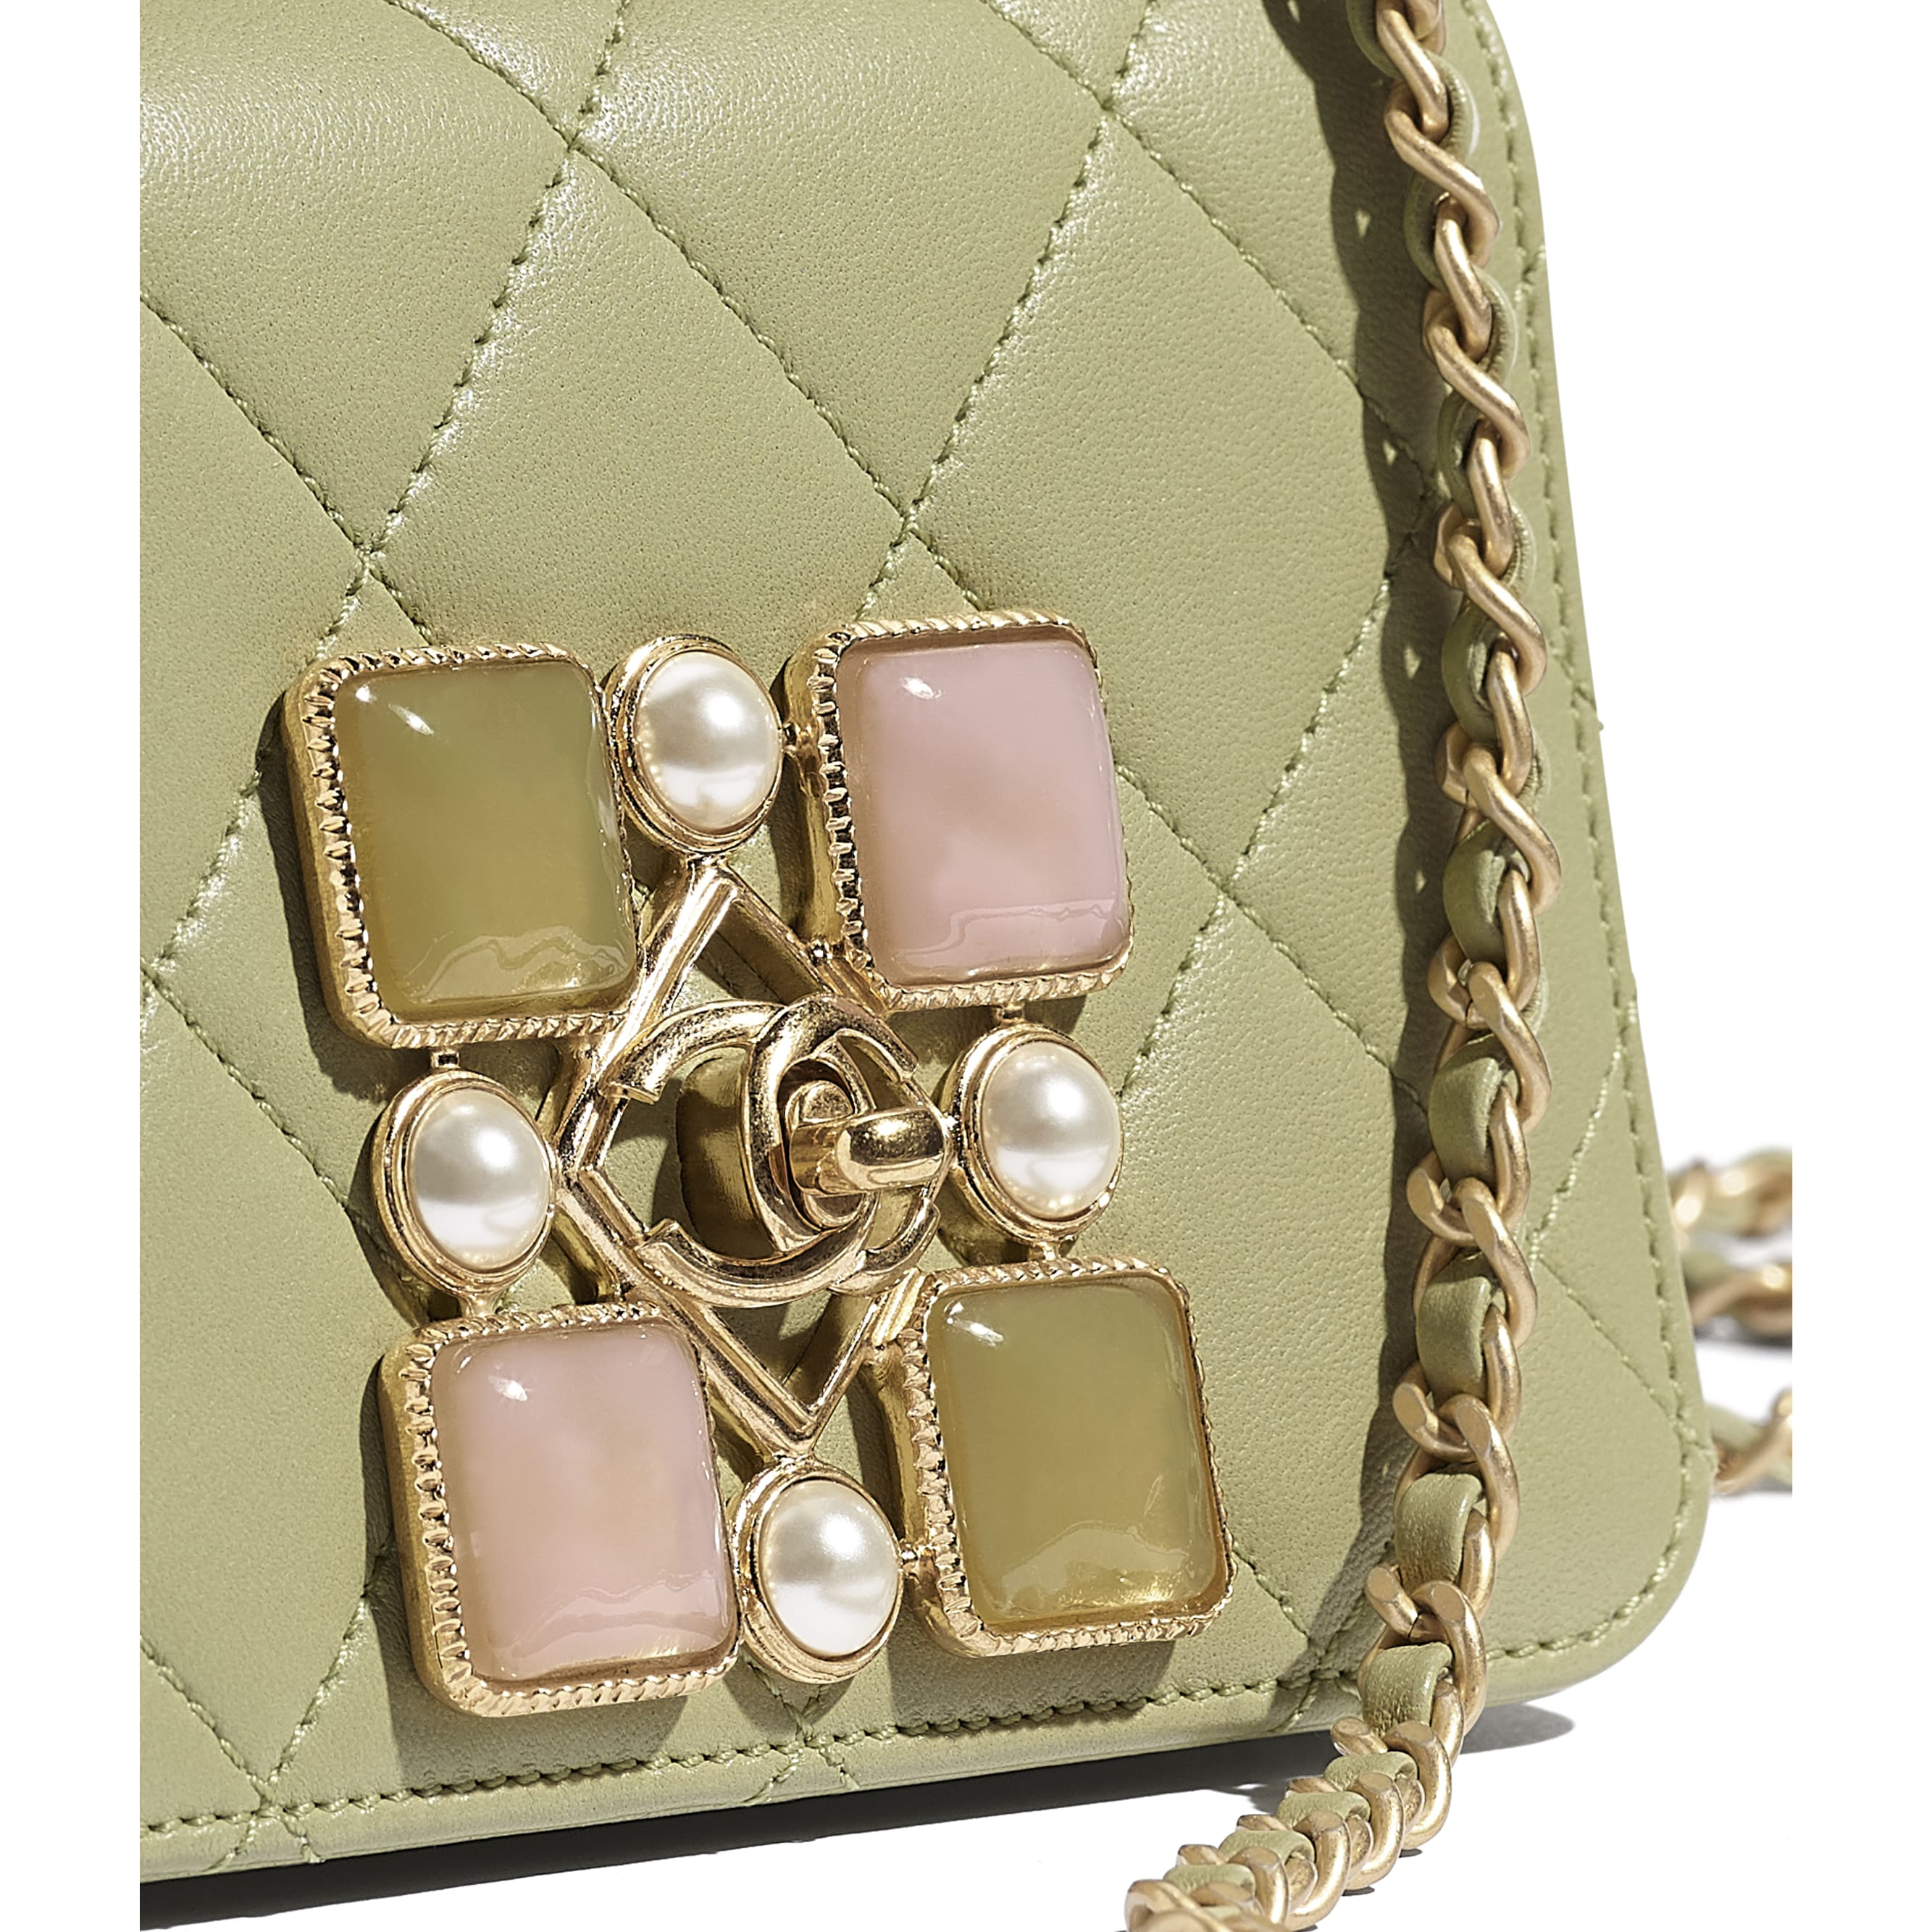 Small Flap Bag - Green - Calfskin, Crystal Pearls, Resin & Gold-Tone Metal - CHANEL - Extra view - see standard sized version